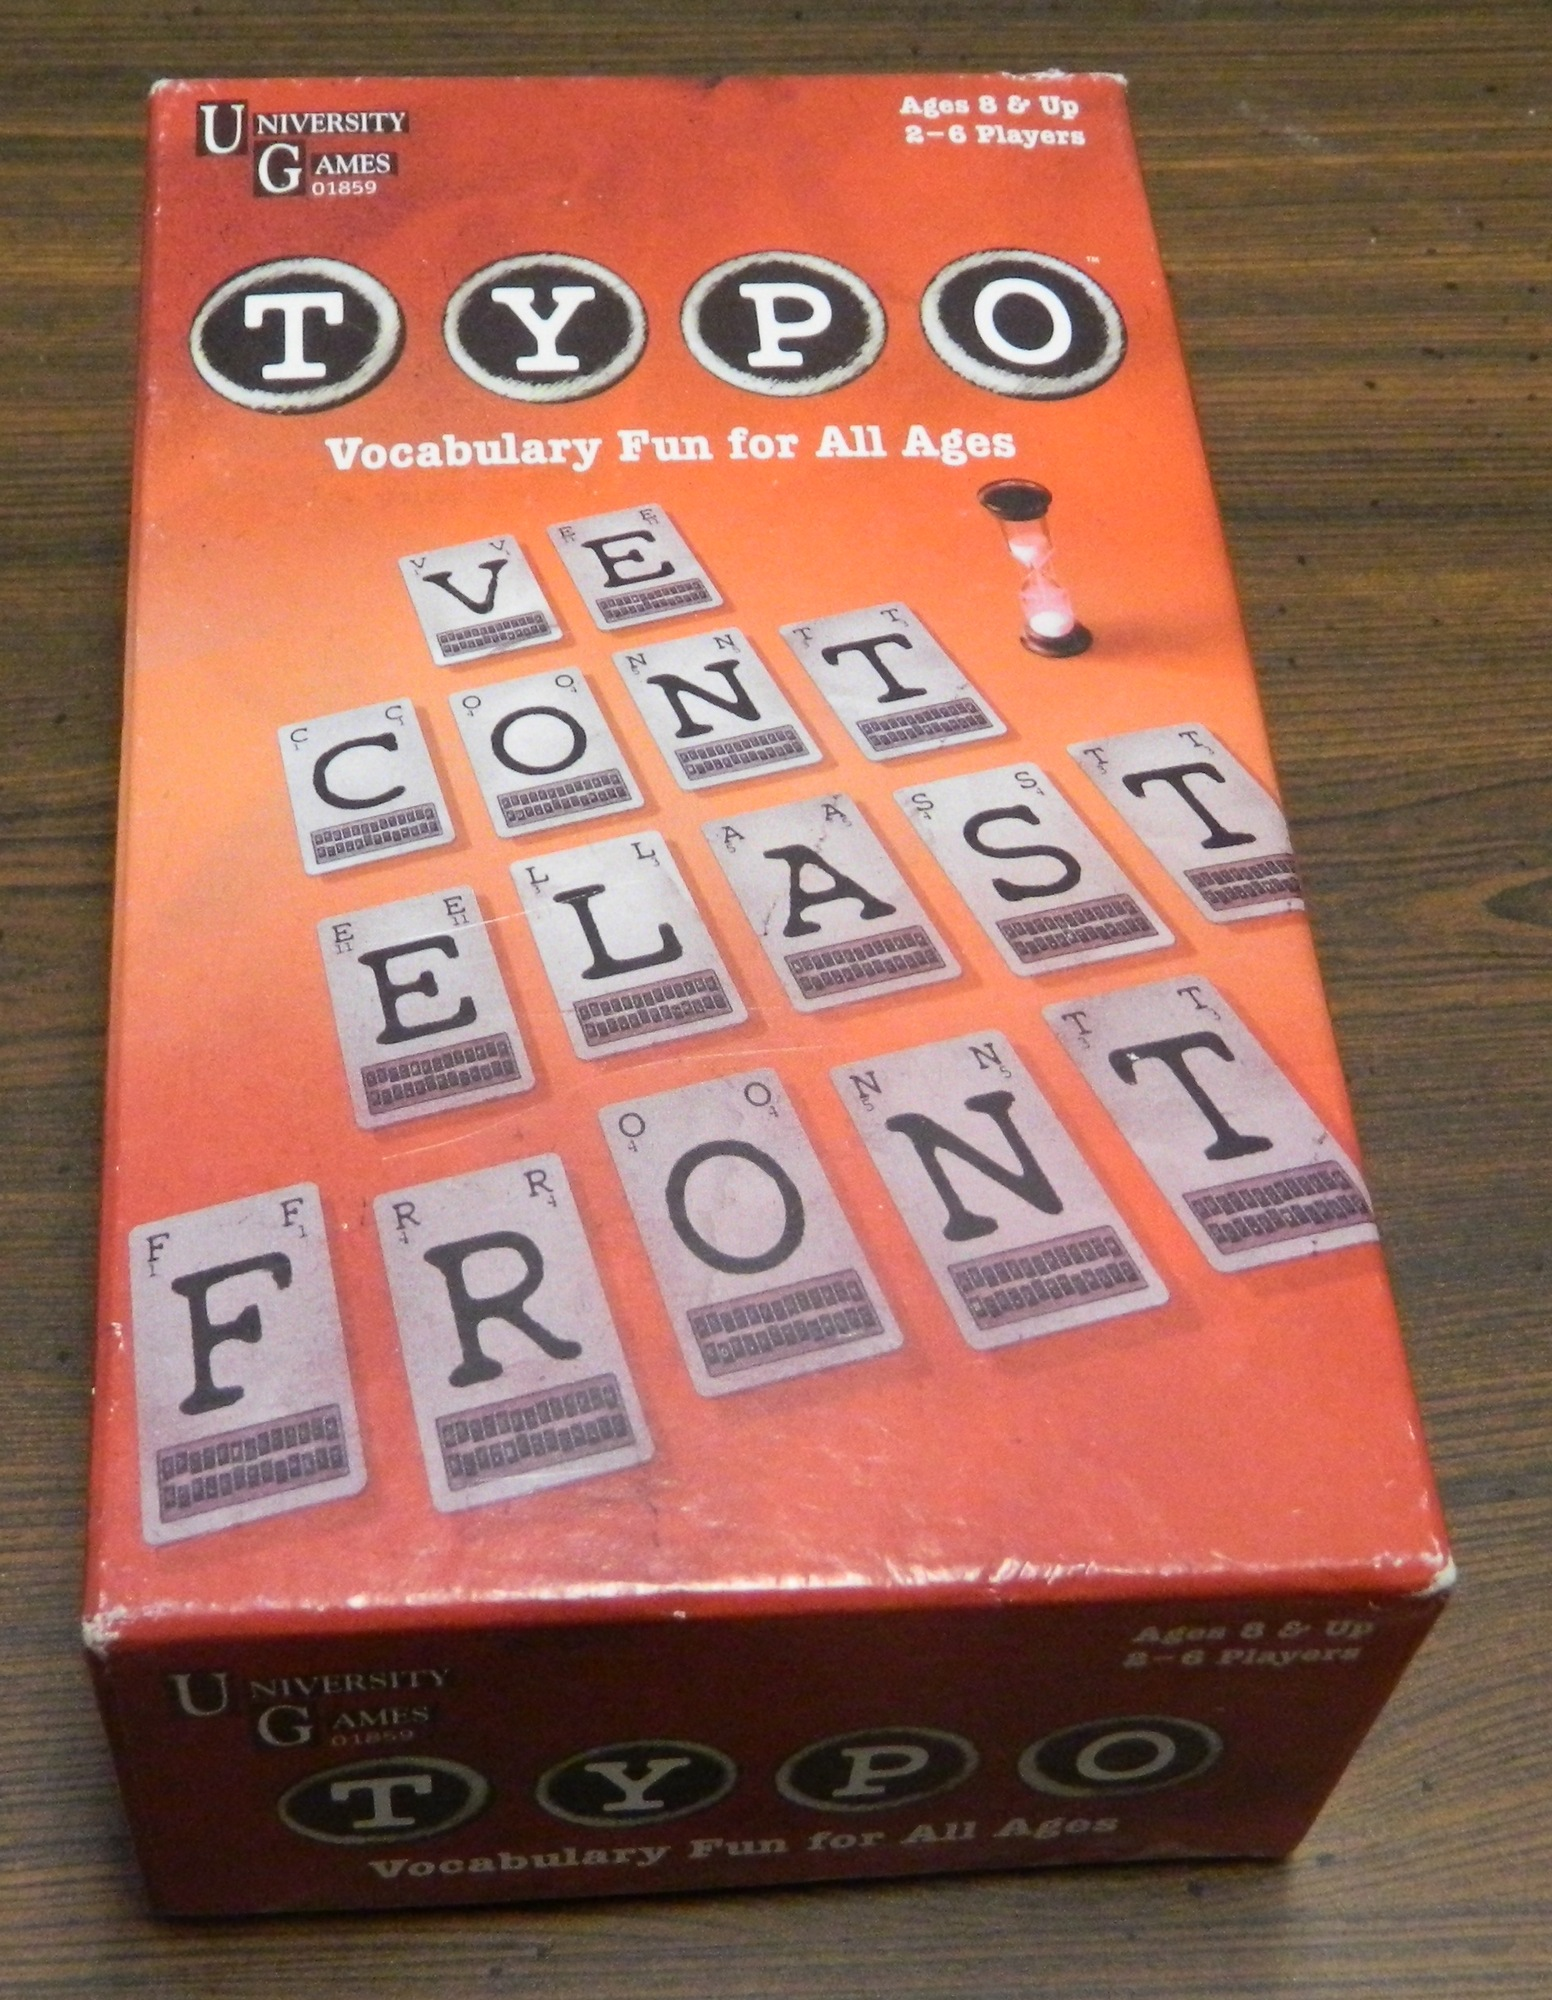 Box for Typo